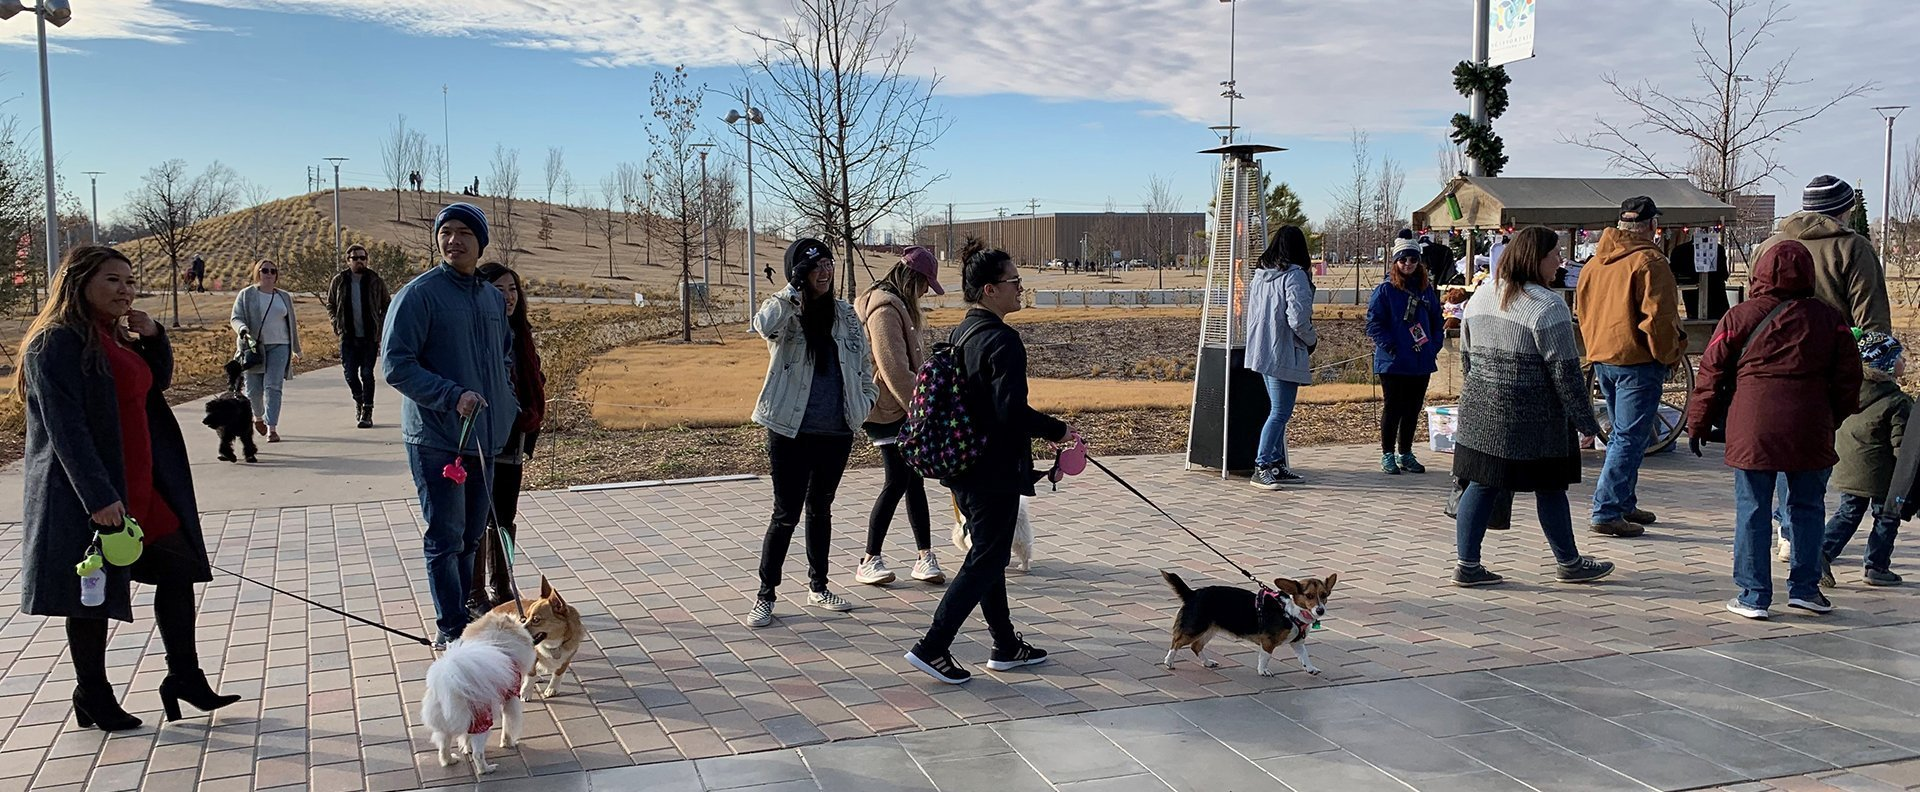 First Day Walk - January 1, 2020